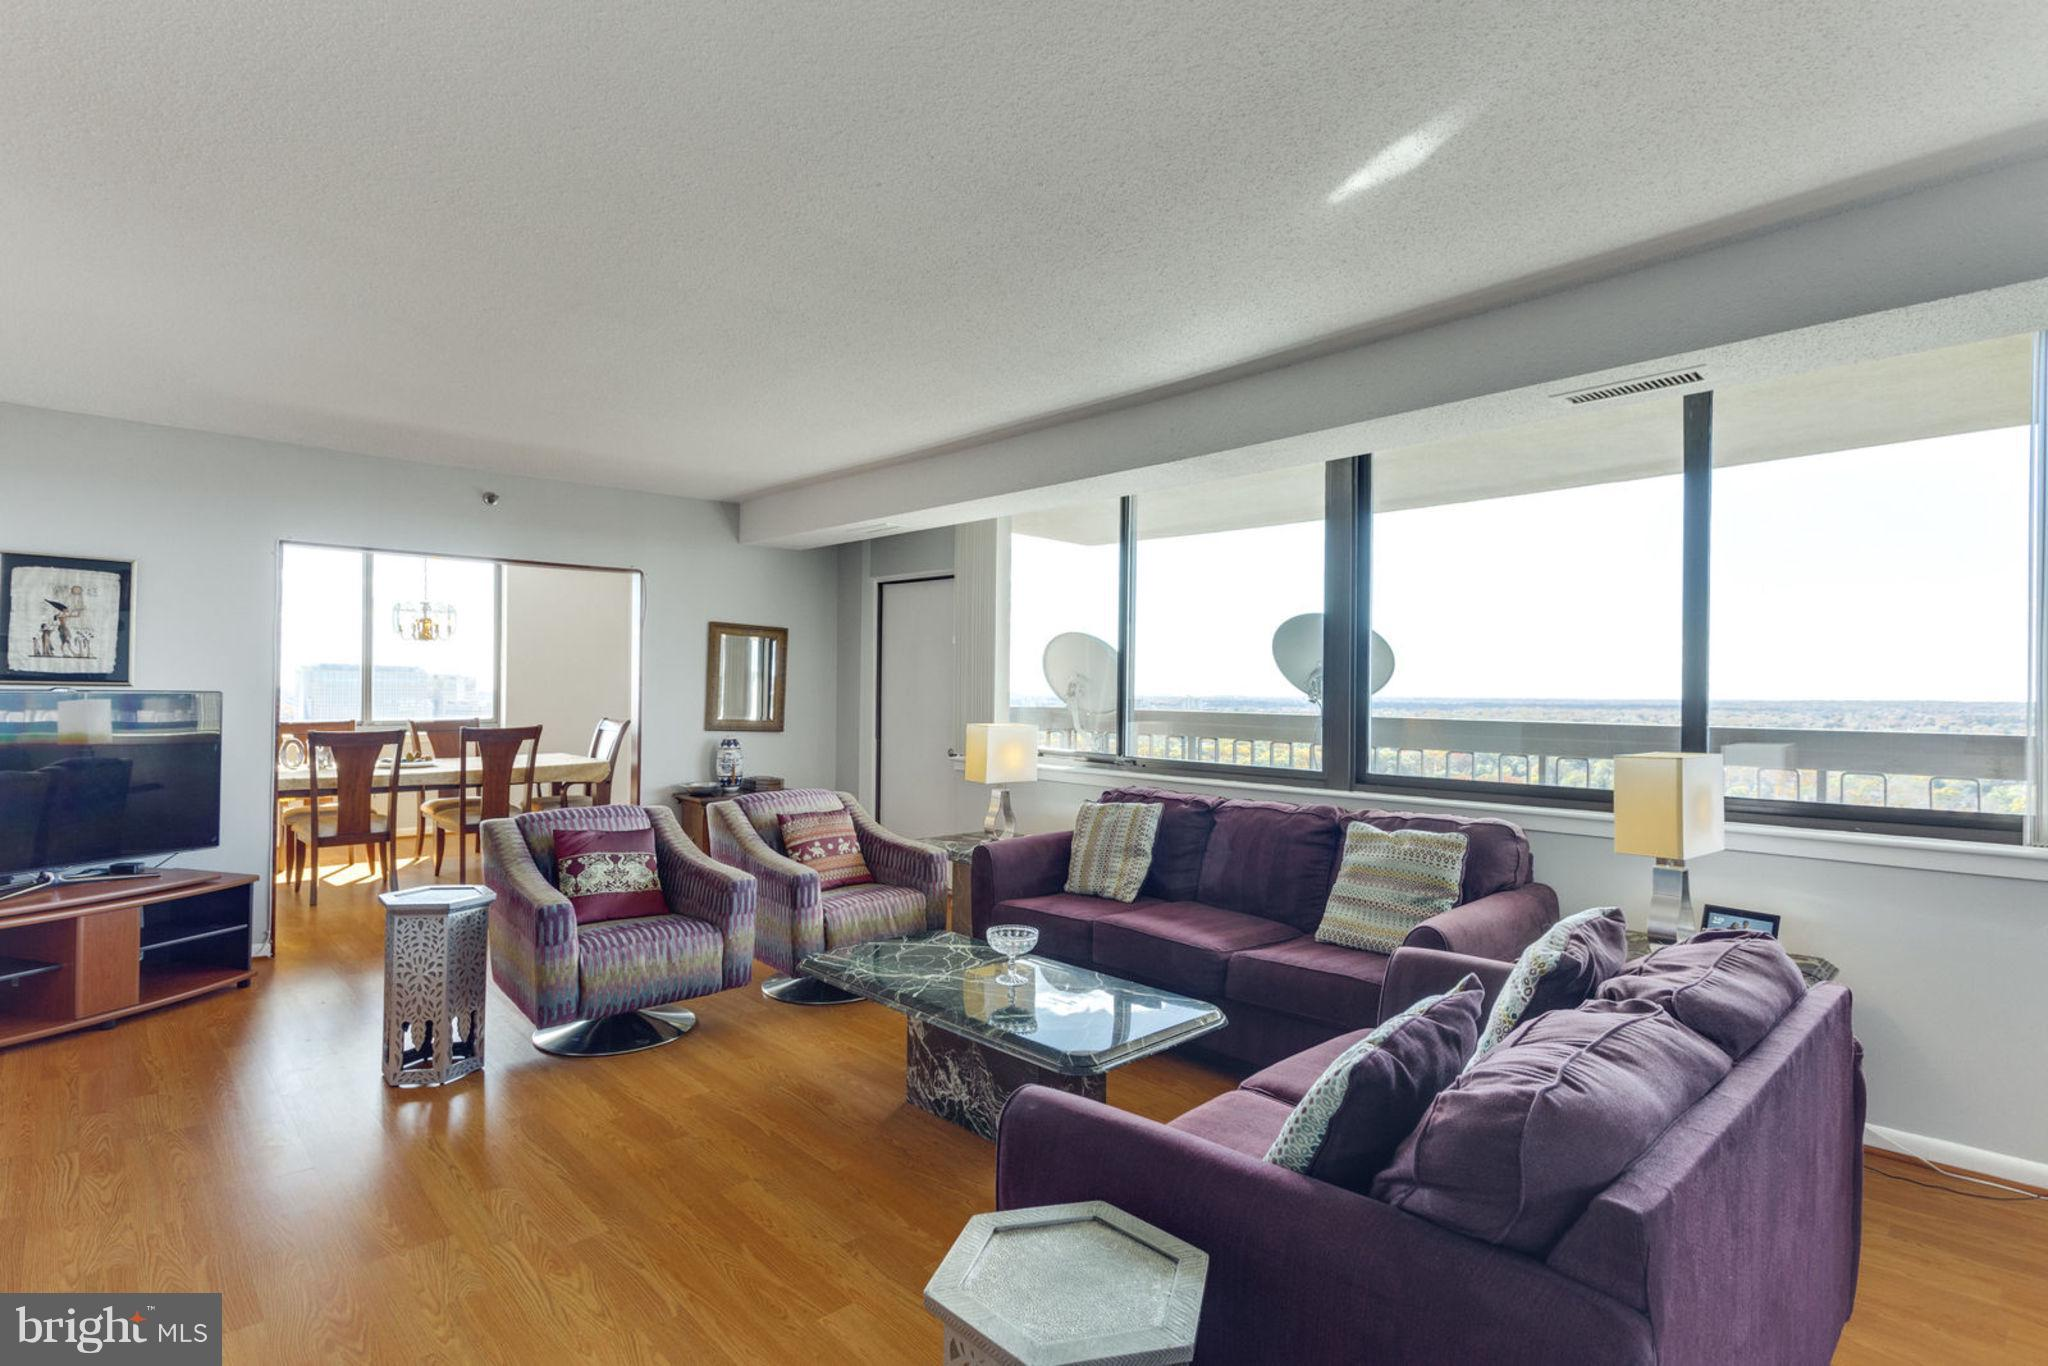 Fully Furnished Biggest Model: 3 BR/3FB/TWO par. sp./TWO Balconies- Brand New Blinds throughout, Prof. Painted 'Sherwin Williams 'Alpaca'. Easy Access to I-395, Washington DC, RNA, Skyline Shopping Mall,  Shirlington. Amenities: 24/7 front desk, Sec. guard, 3 gyms, library, billiard /party rooms, etc. Check the Shuttle schedule!